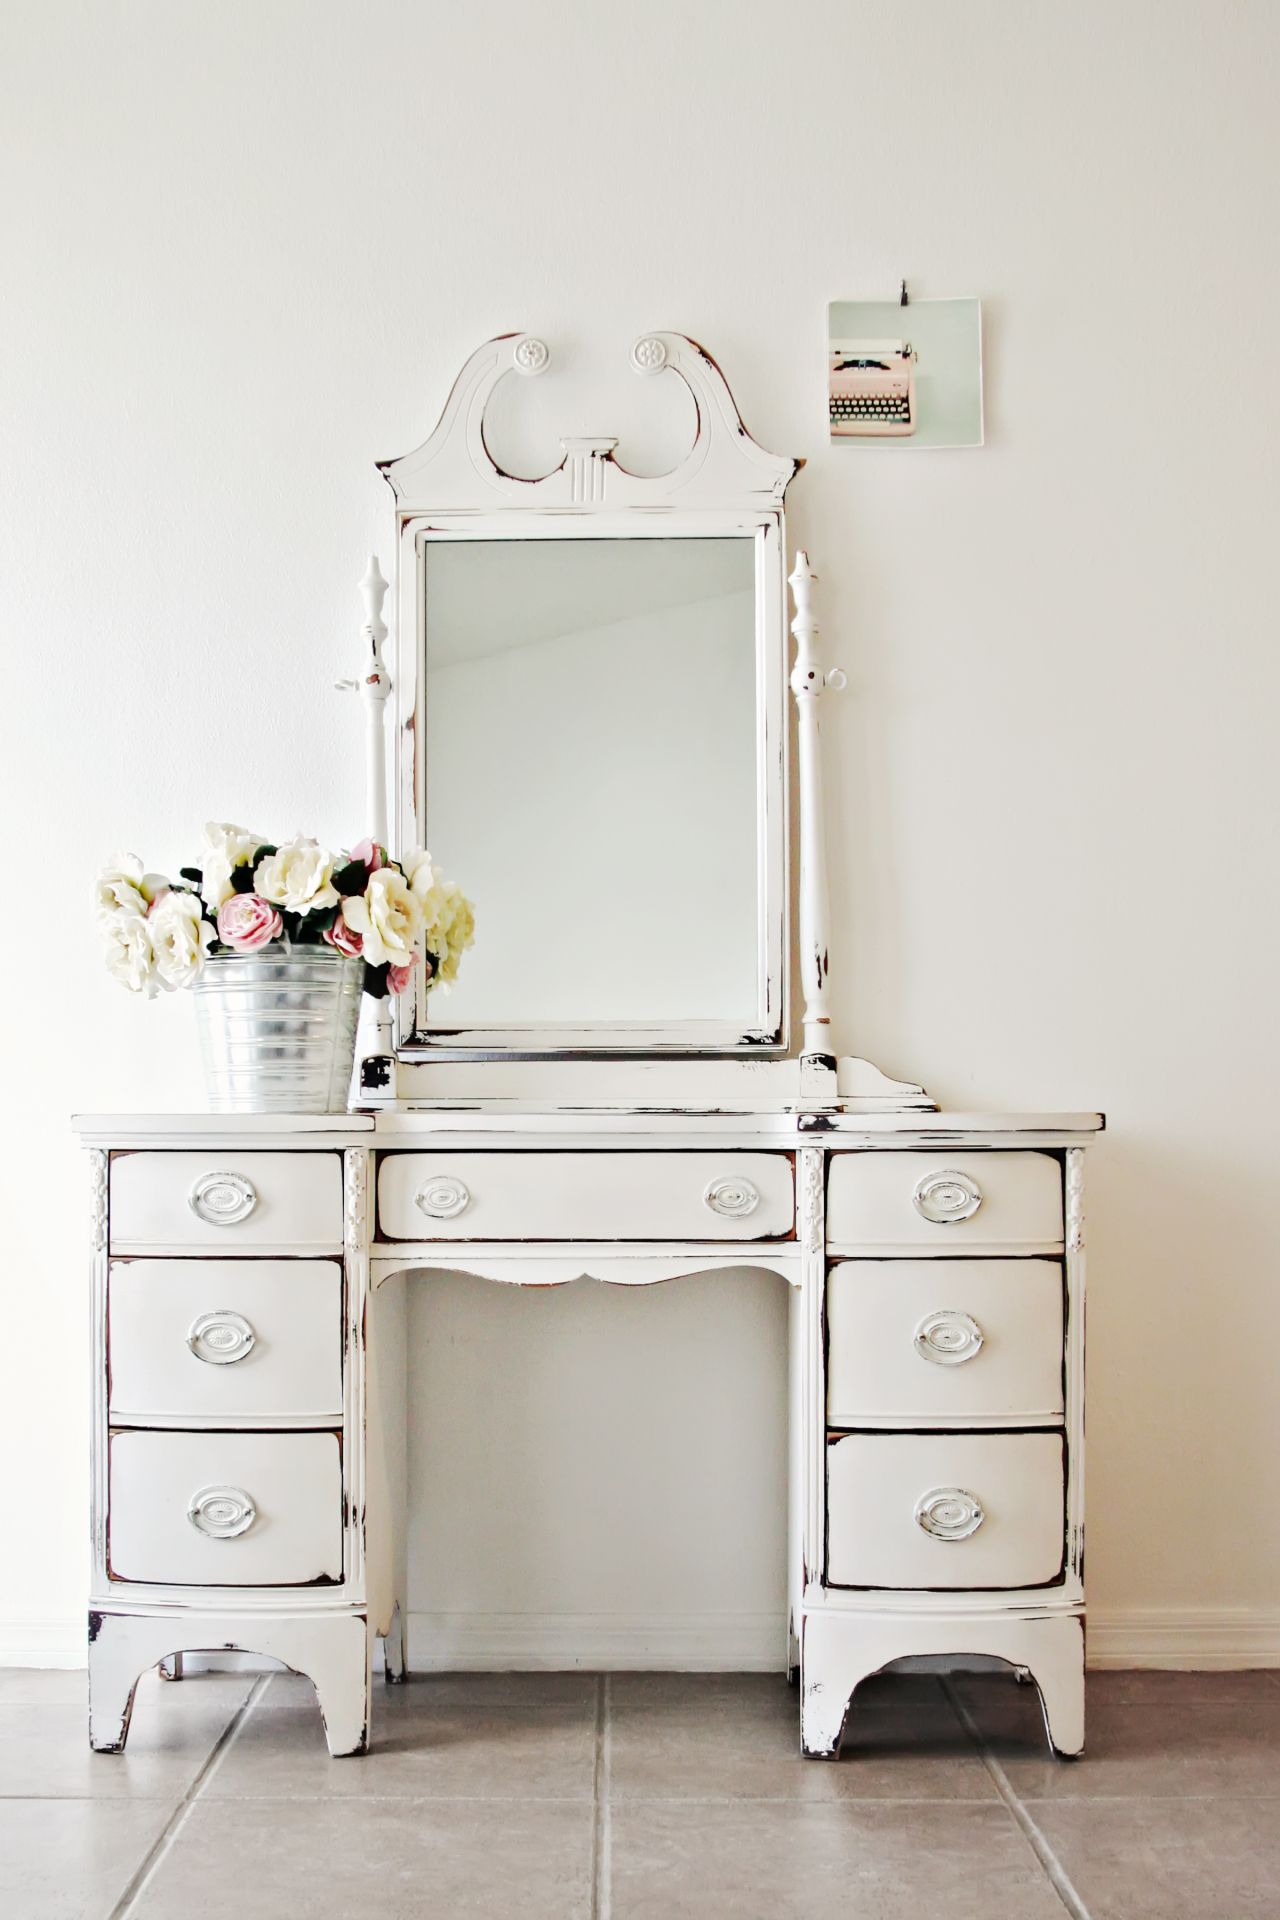 distressed white vintage vanity - Distressed White Vintage Vanity Vintage Interiors Pinterest